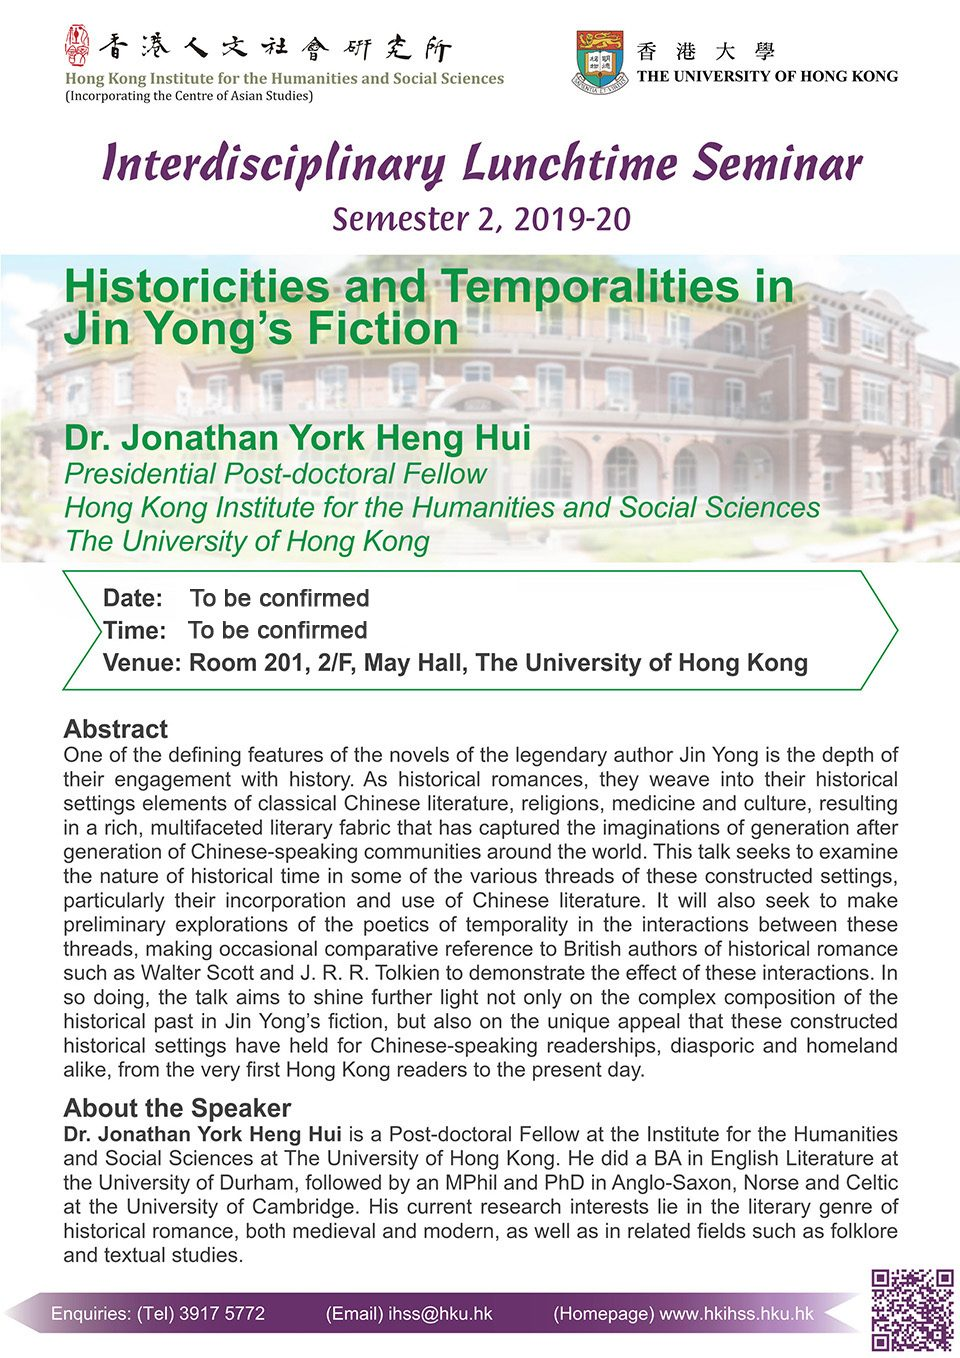 "Interdisciplinary Lunchtime Seminar on ""Historicities and Temporalities in Jin Yong's Fiction"" by Dr. Jonathan York Heng Hui"